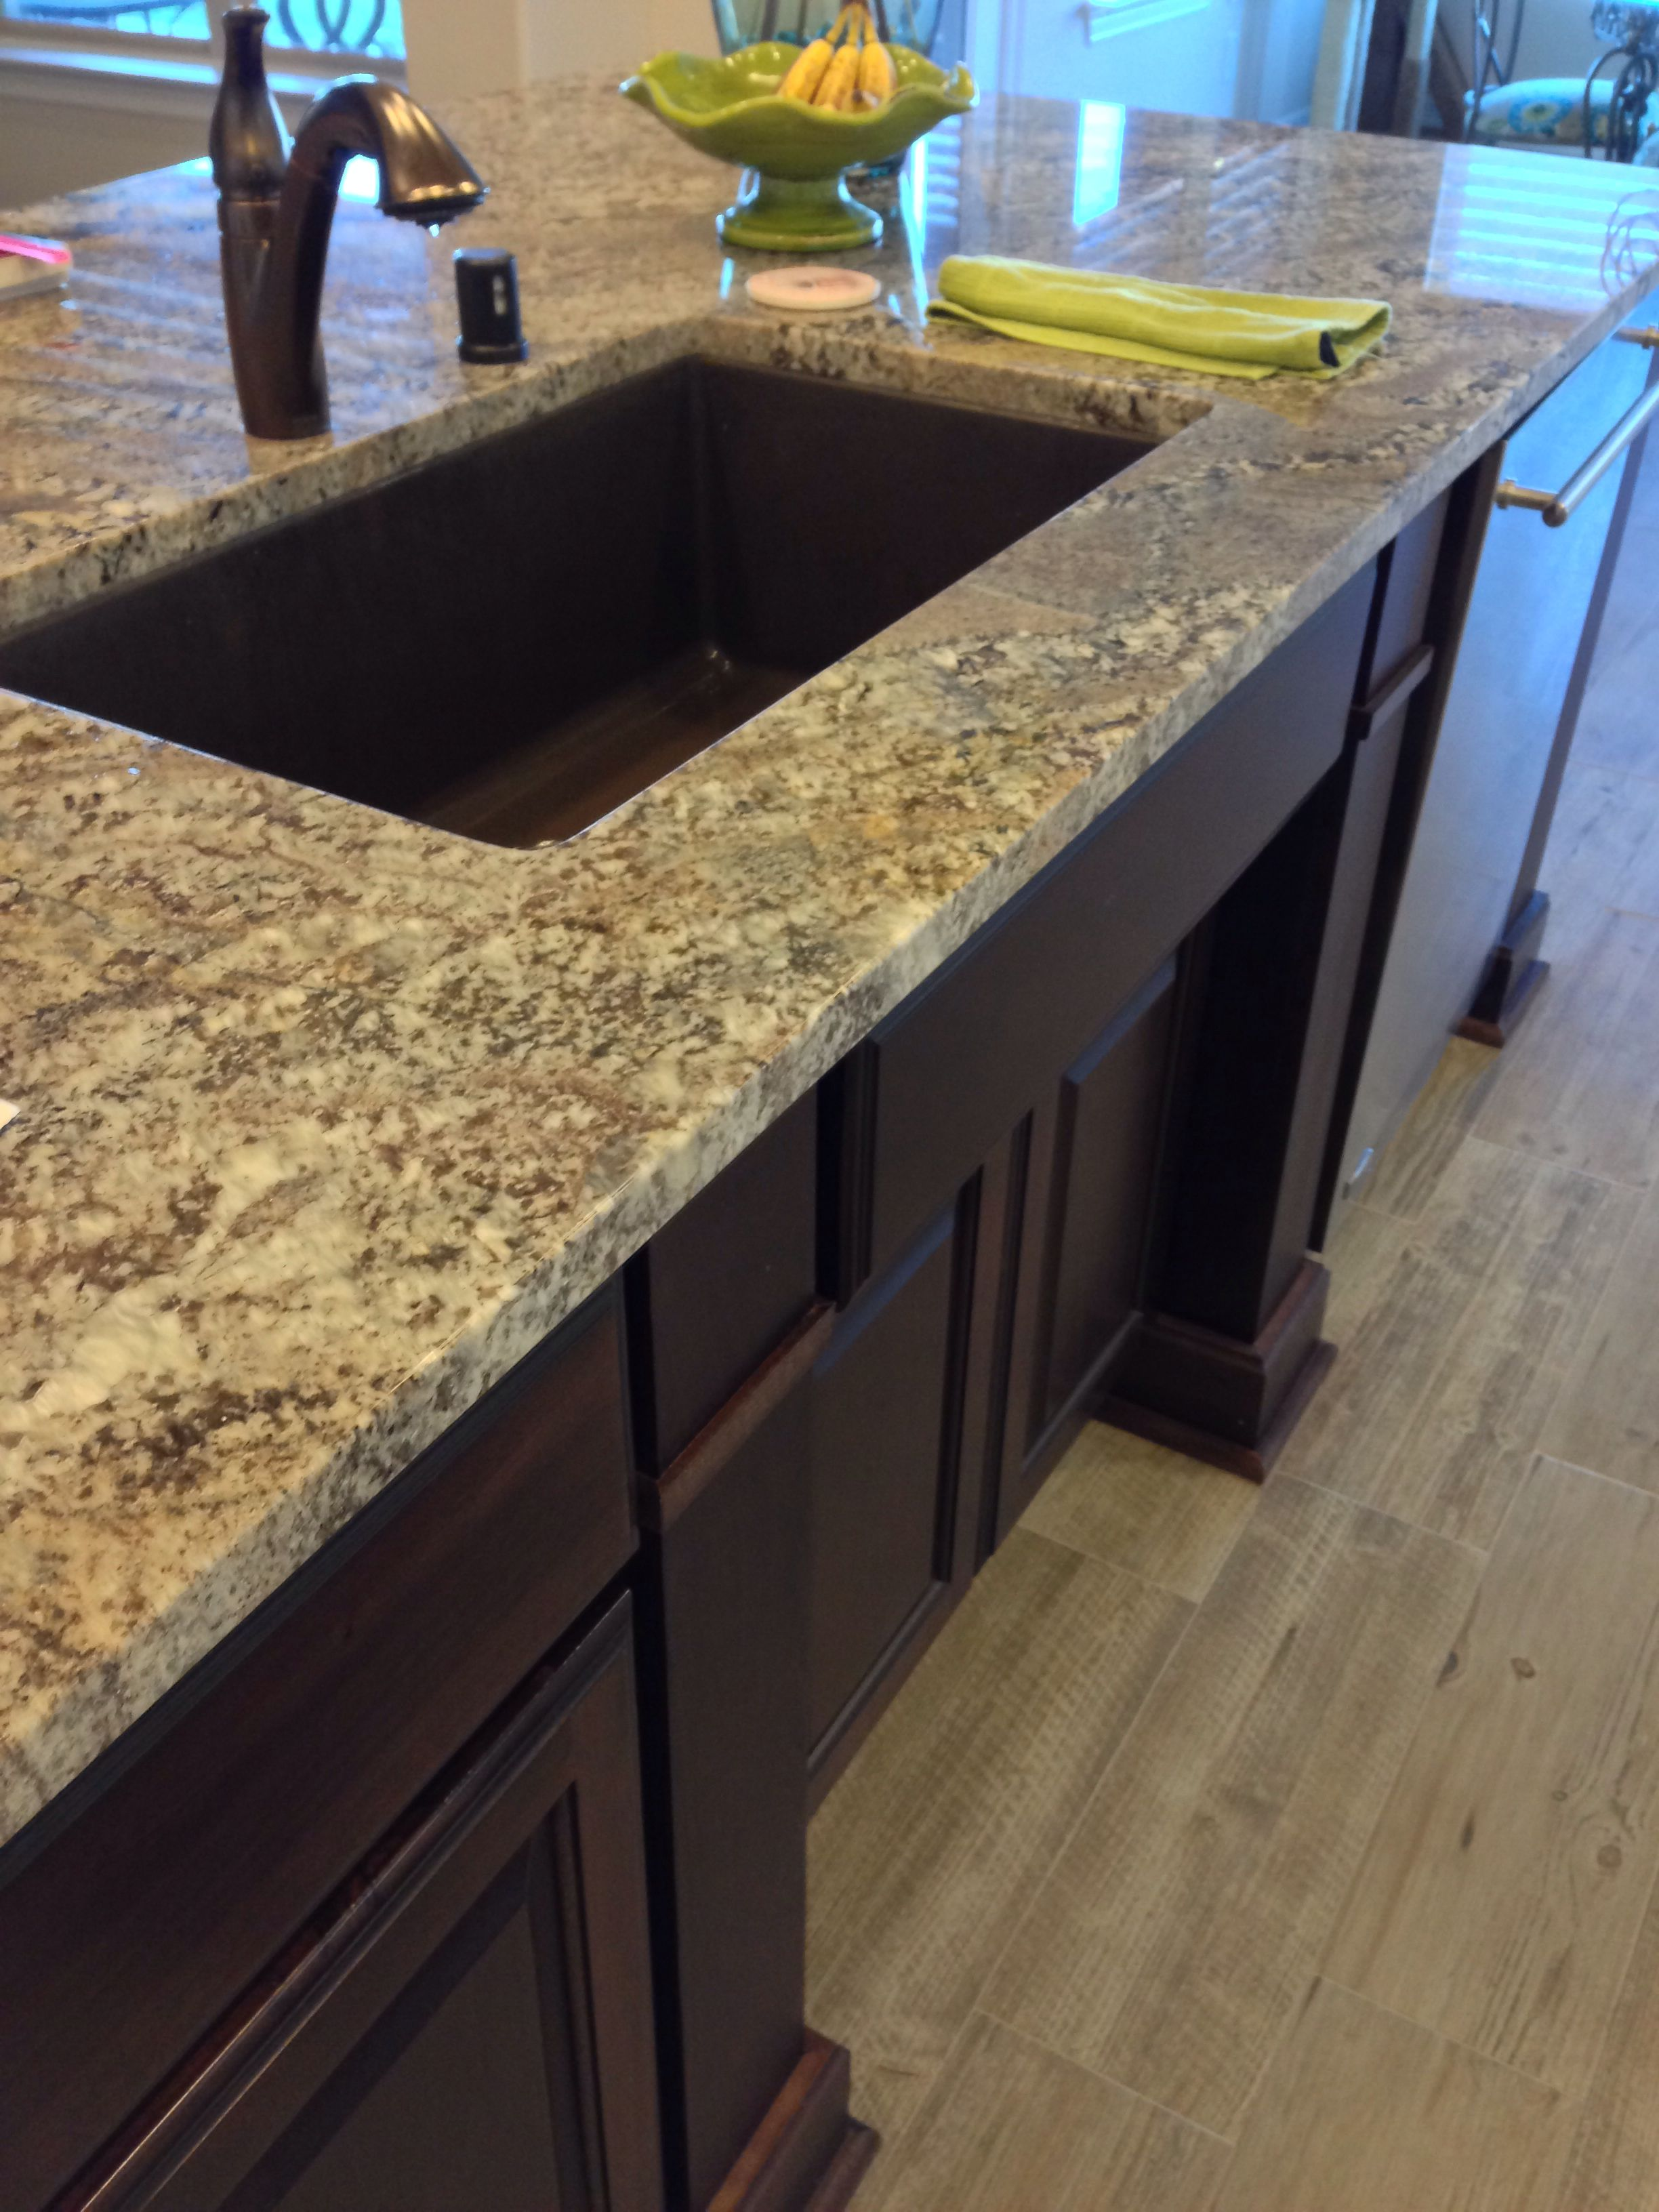 Pin By Mary Hogenmiller On House Design Project Best Kitchen Sinks Brown Kitchens Cool Kitchens